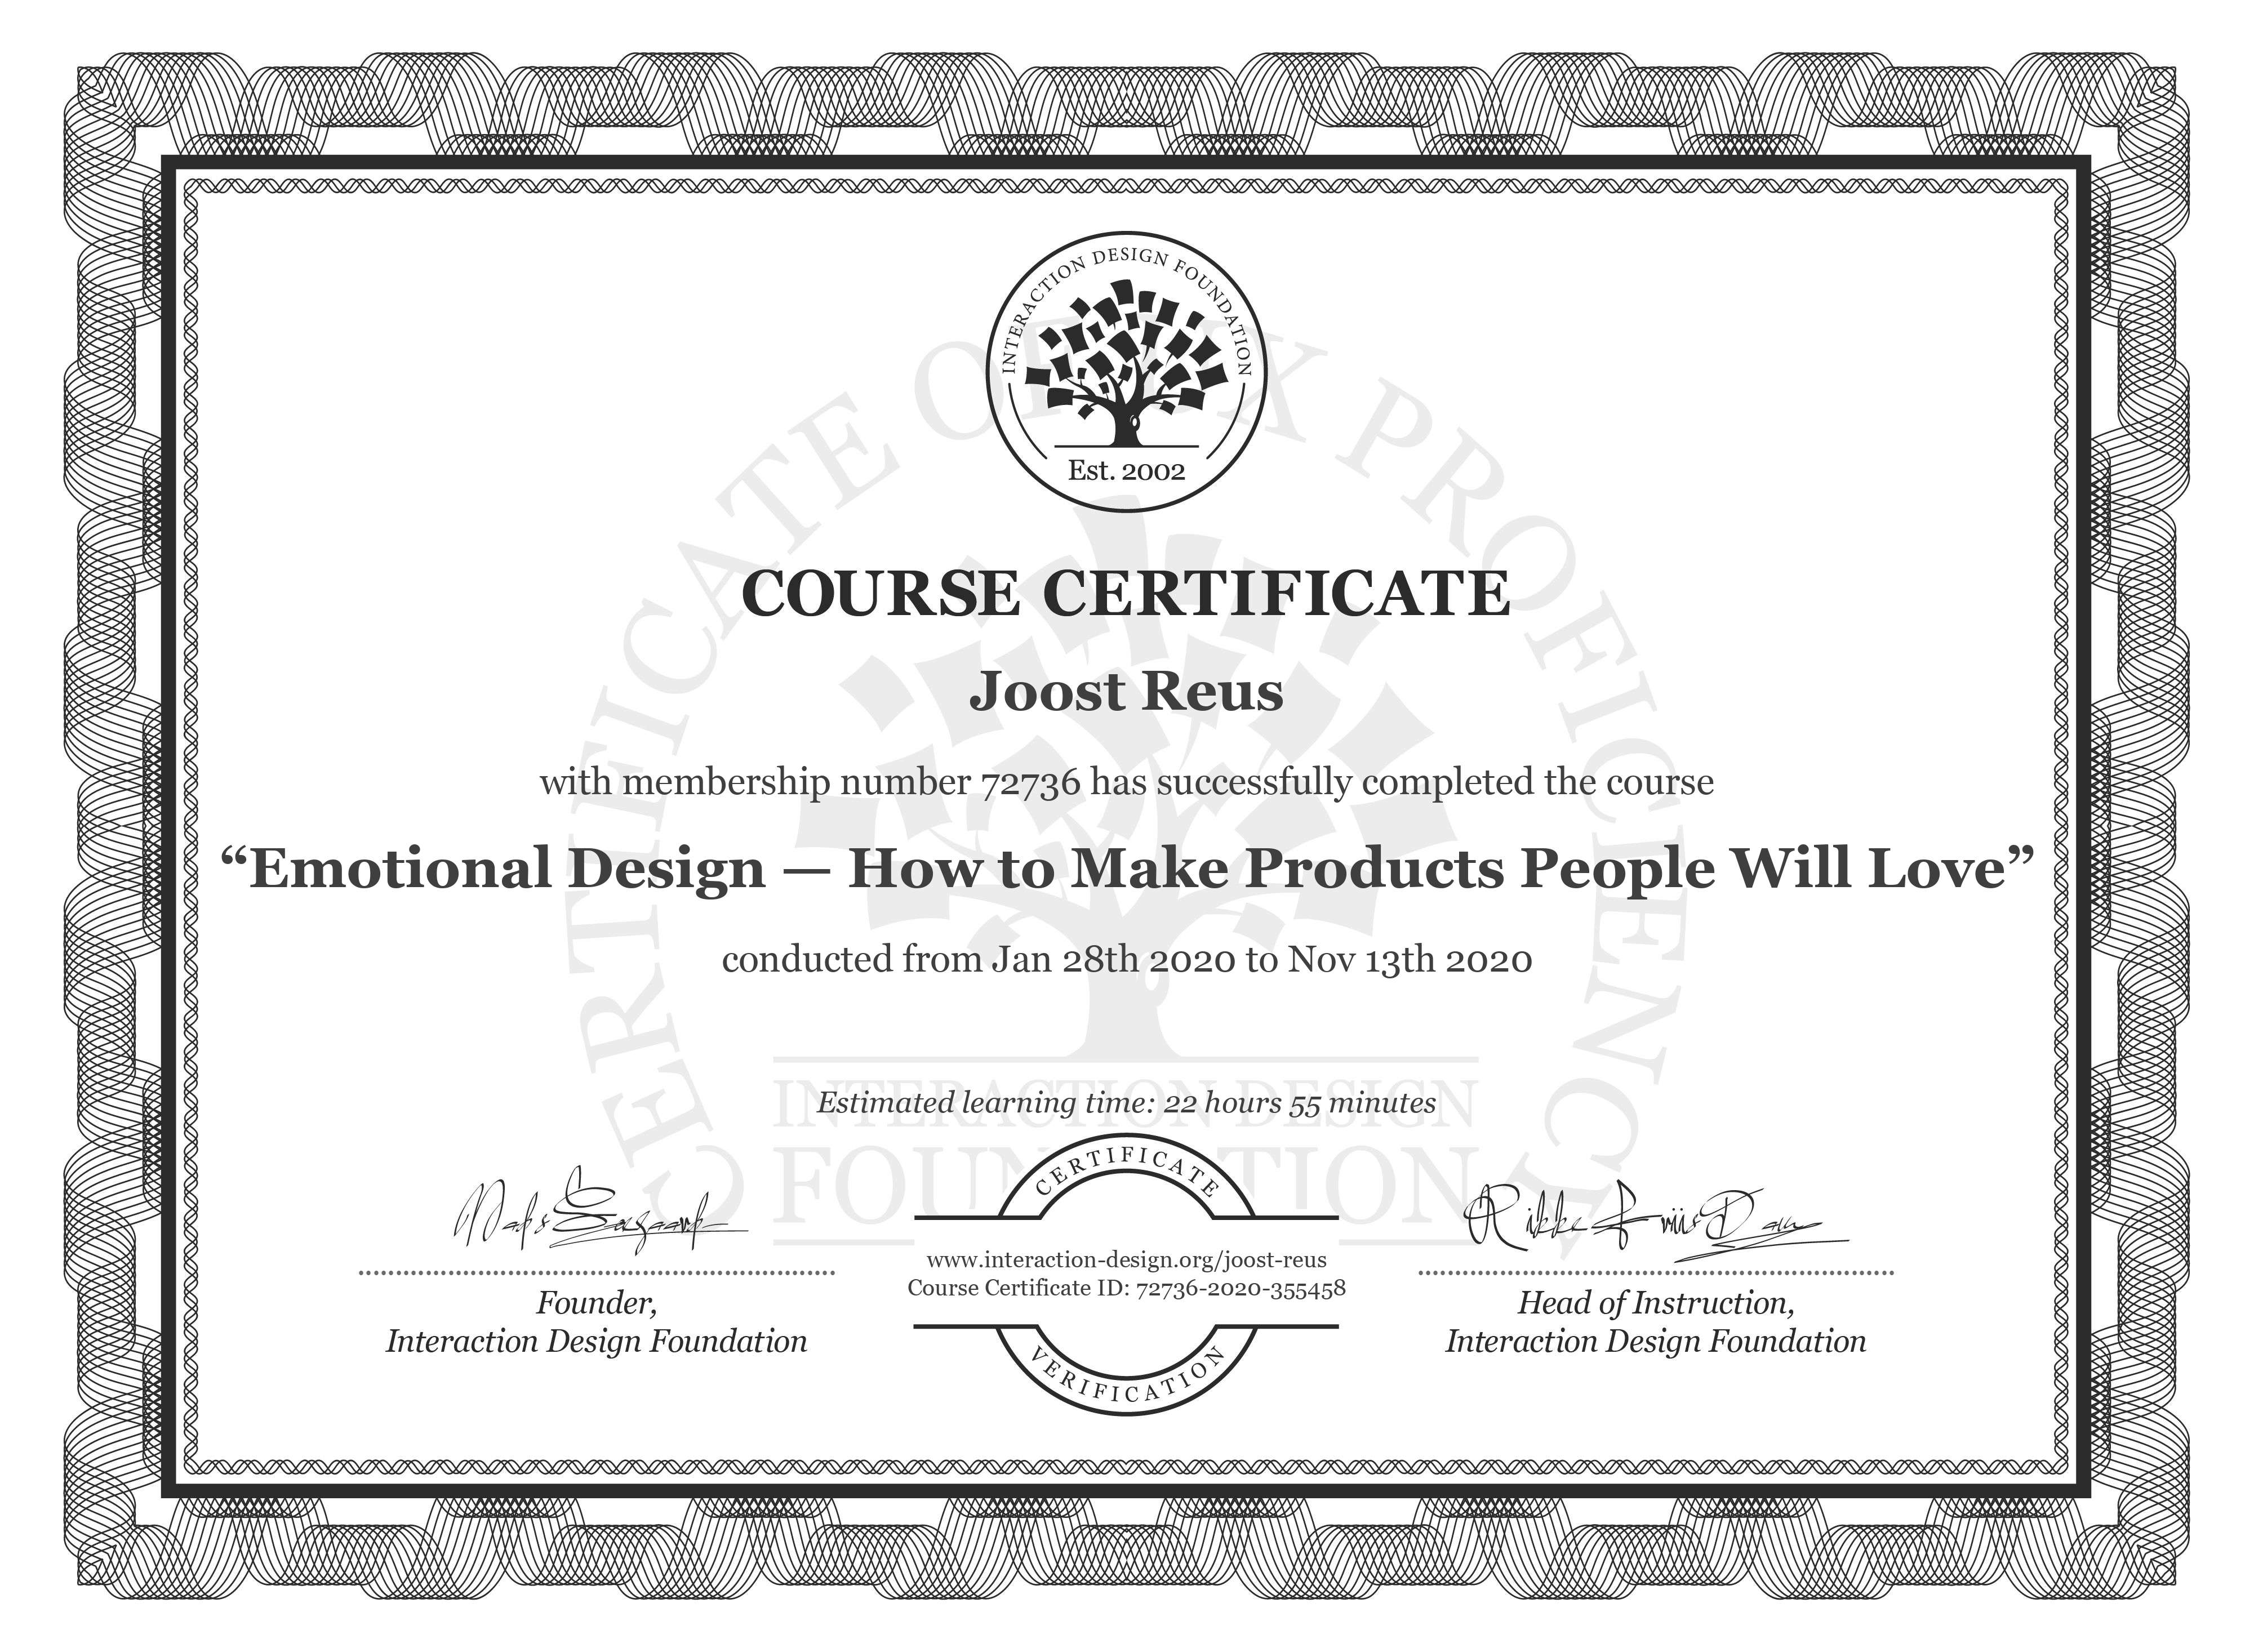 Joost Reus's Course Certificate: Emotional Design — How to Make Products People Will Love